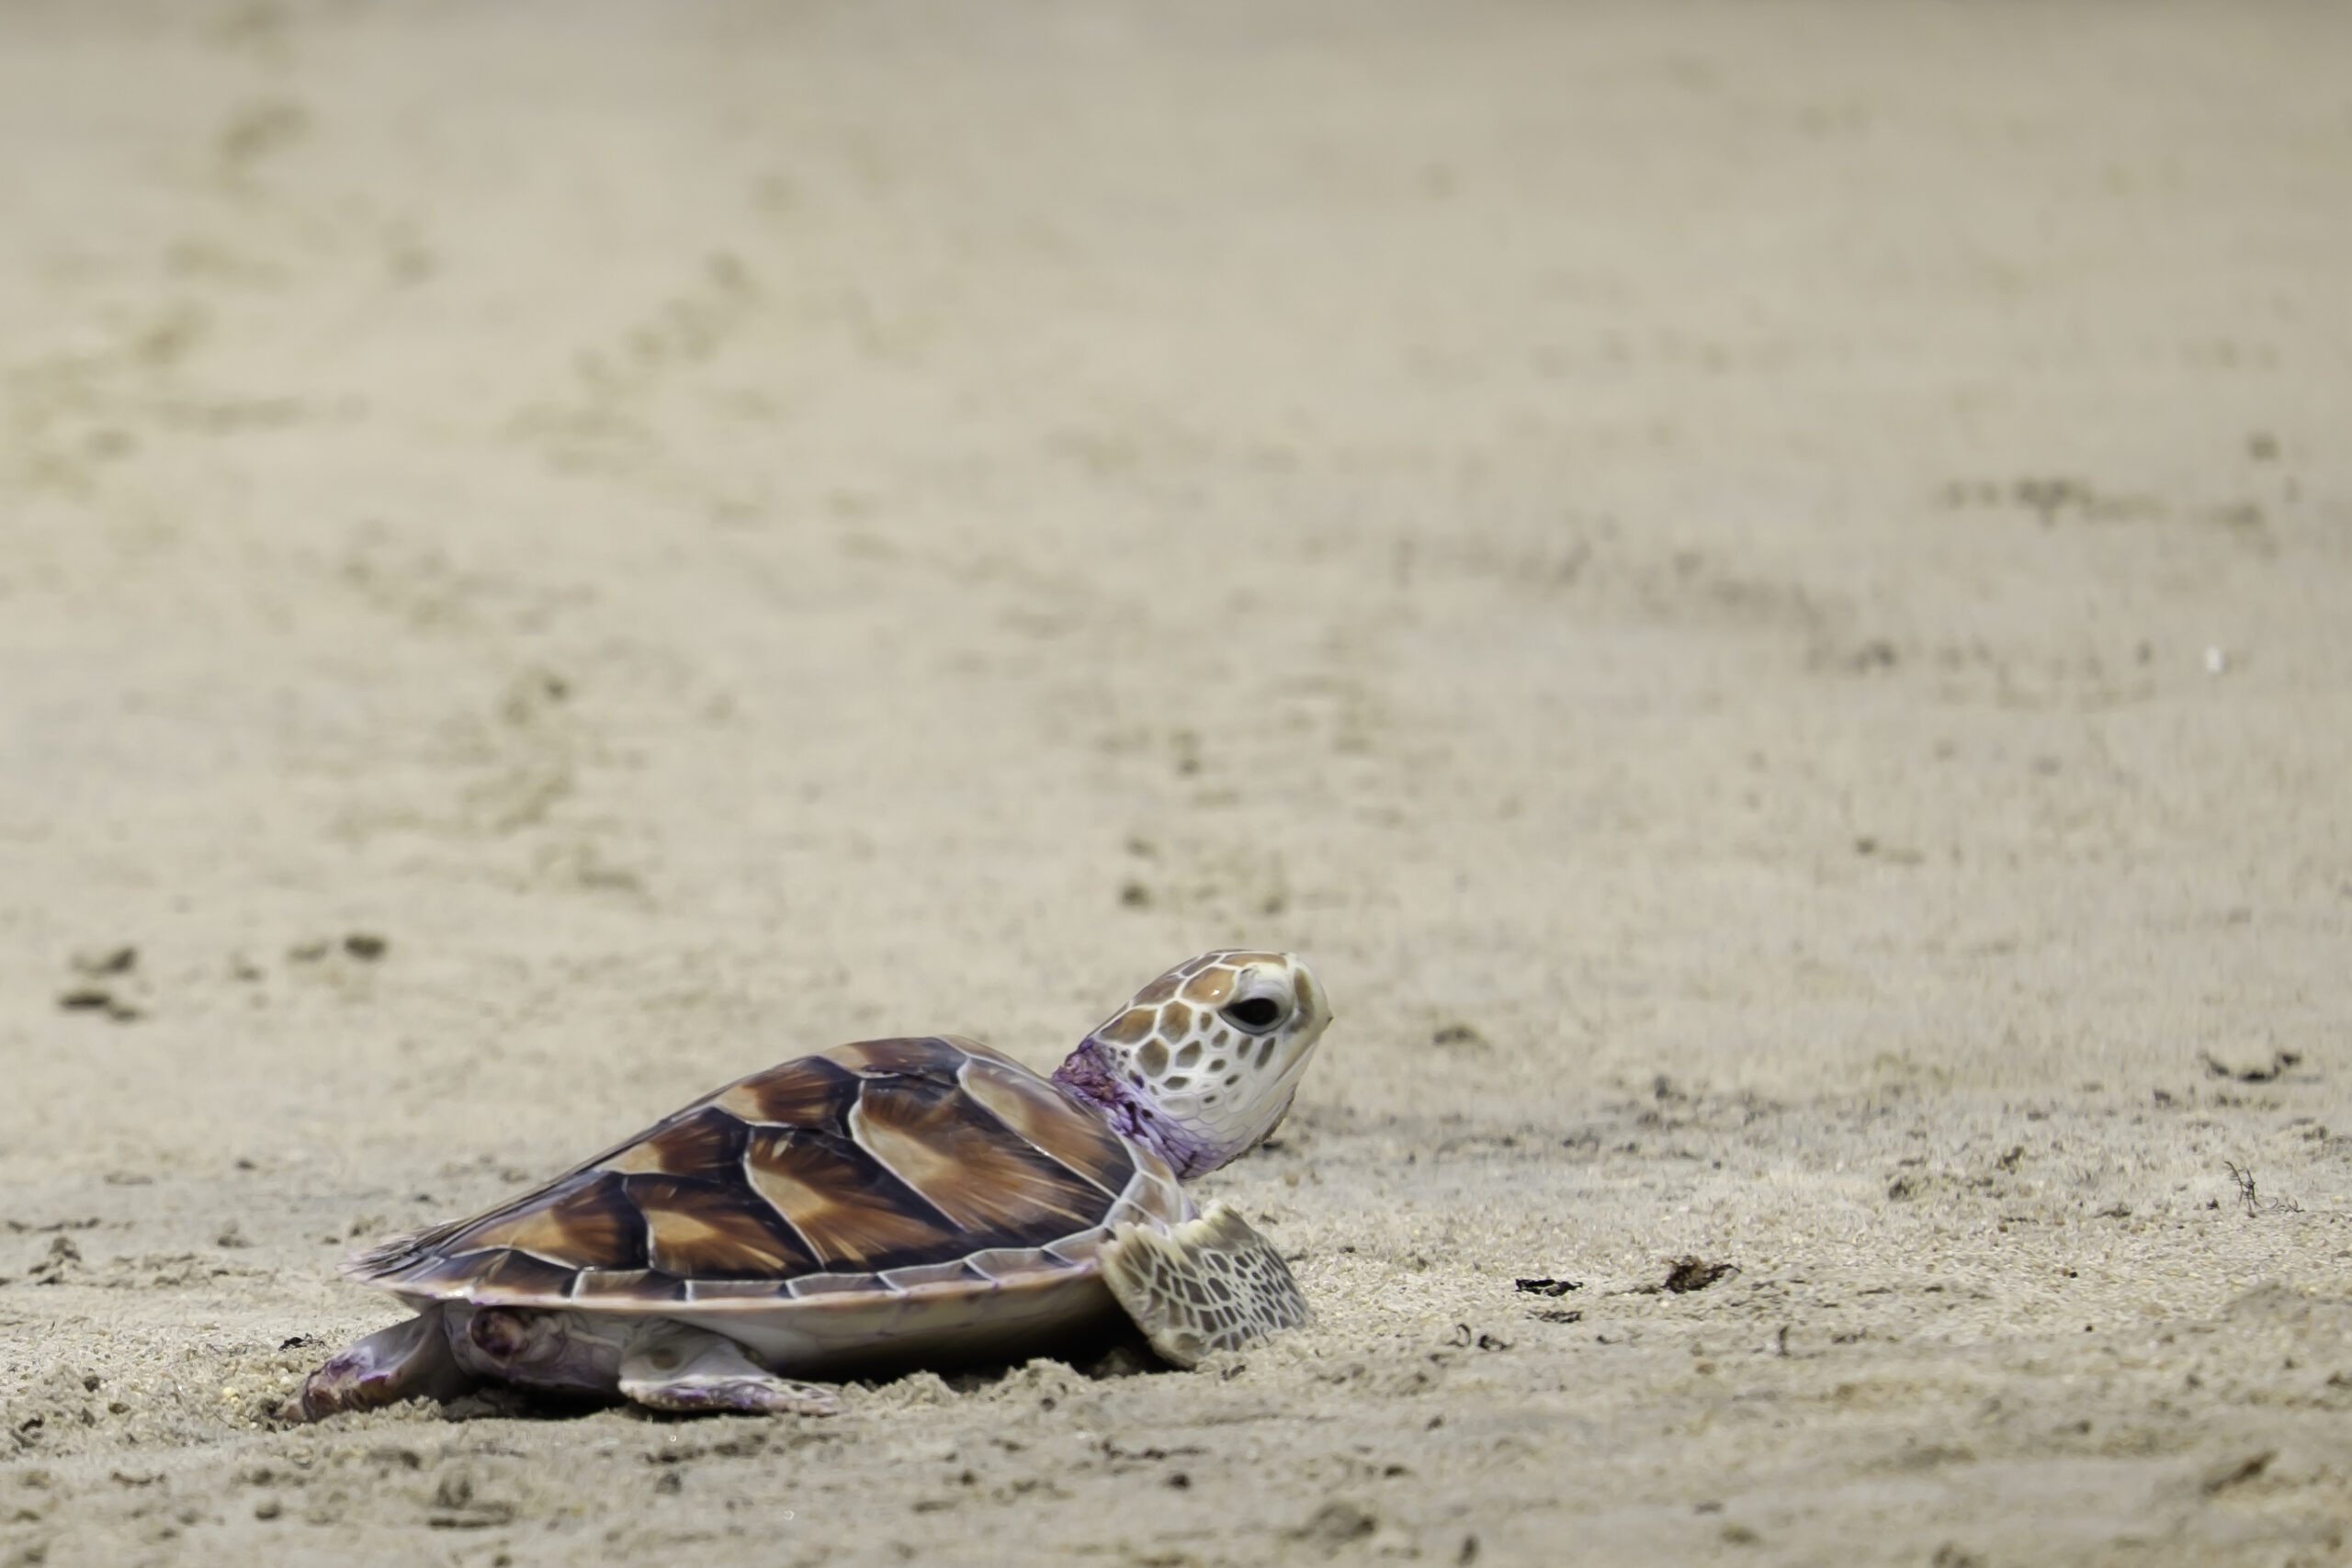 Film, Sea turtles, Day of Dead Converge